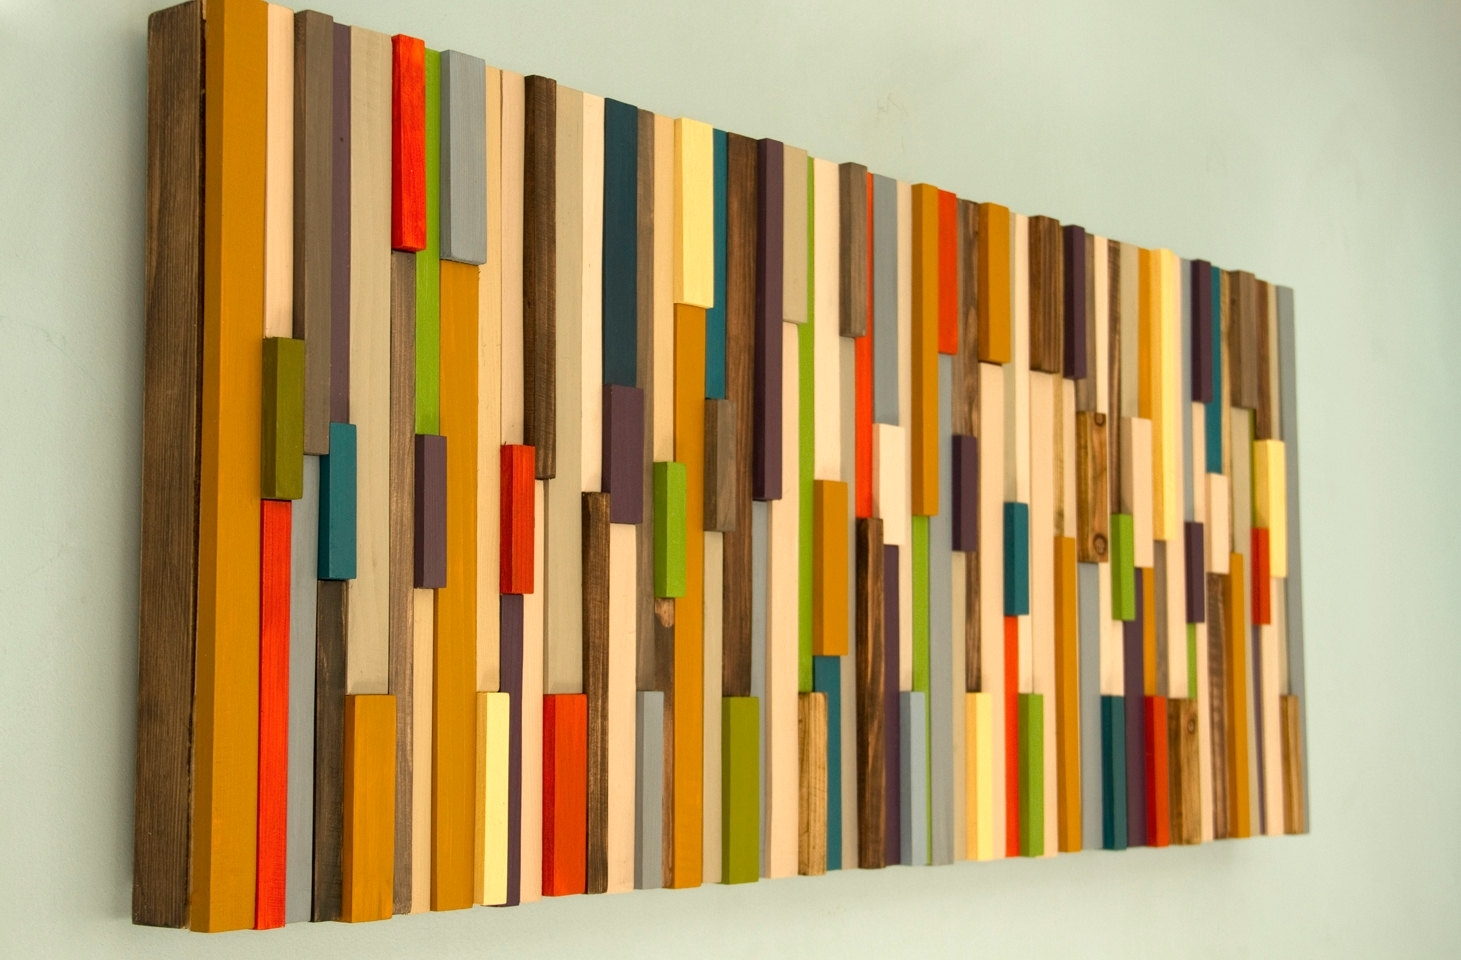 Modern Large Wall Art, Reclaimed Wood Art Sculpture, Painted Wood With Regard To Most Recently Released Wood Art Wall (View 13 of 15)